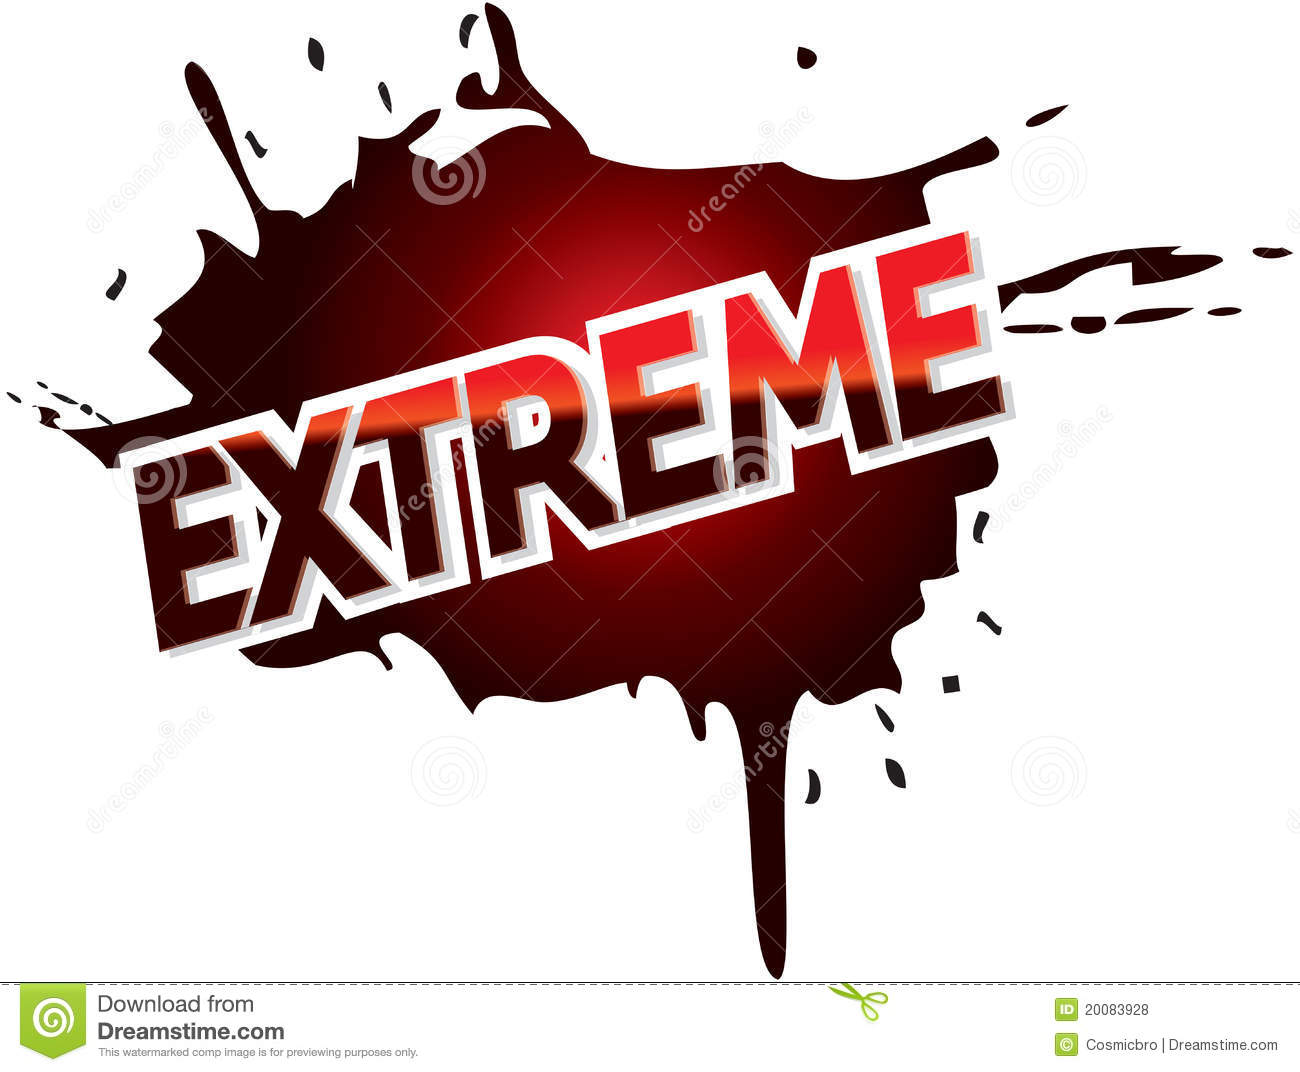 THE TRUTH ABOUT EXTREME* | uld...